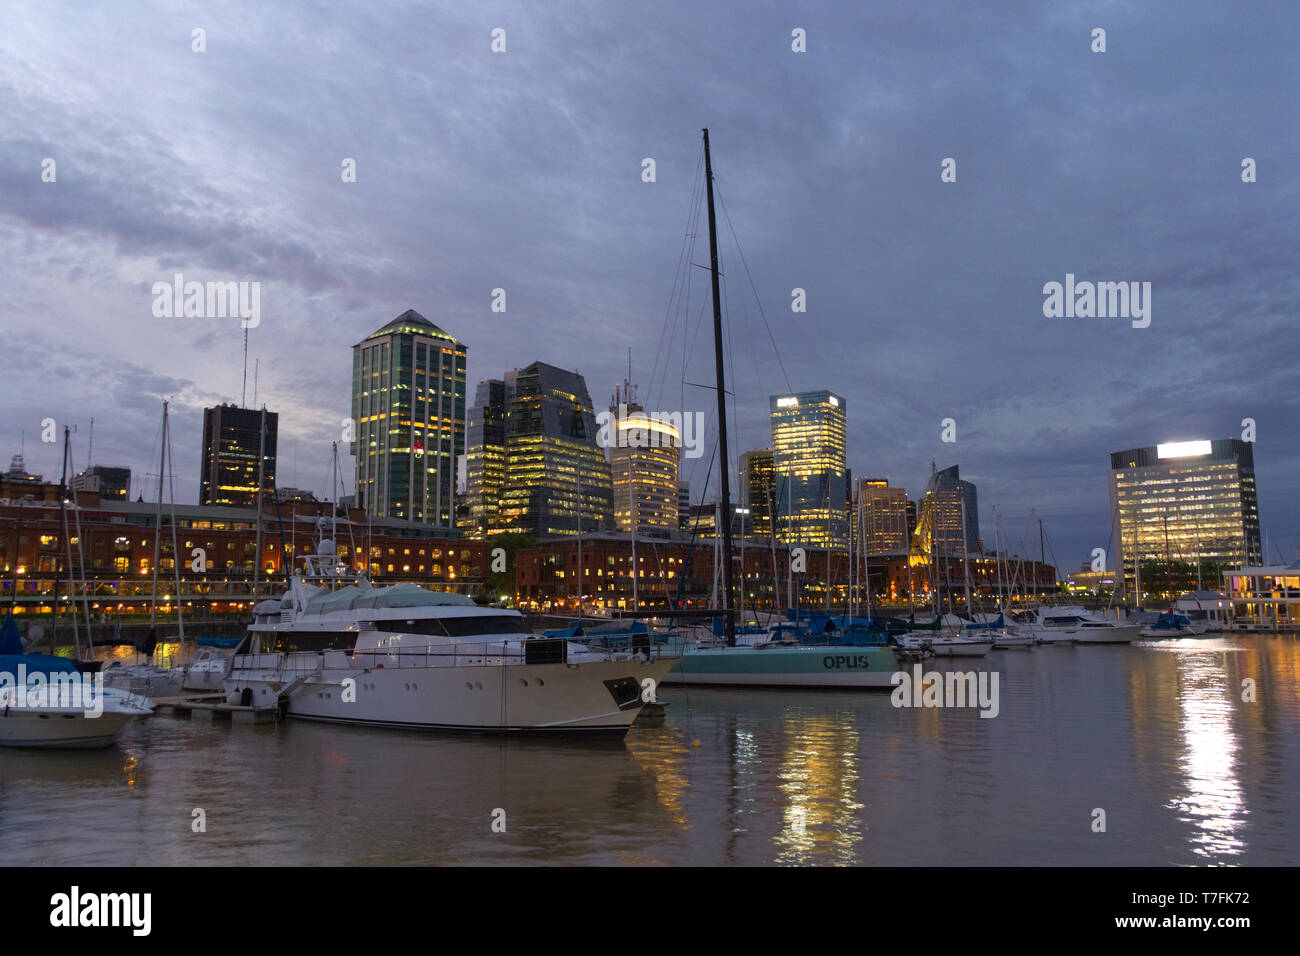 Several yachts anchored in Puerto Madero, Buenos Aires, at dusk. - Stock Image